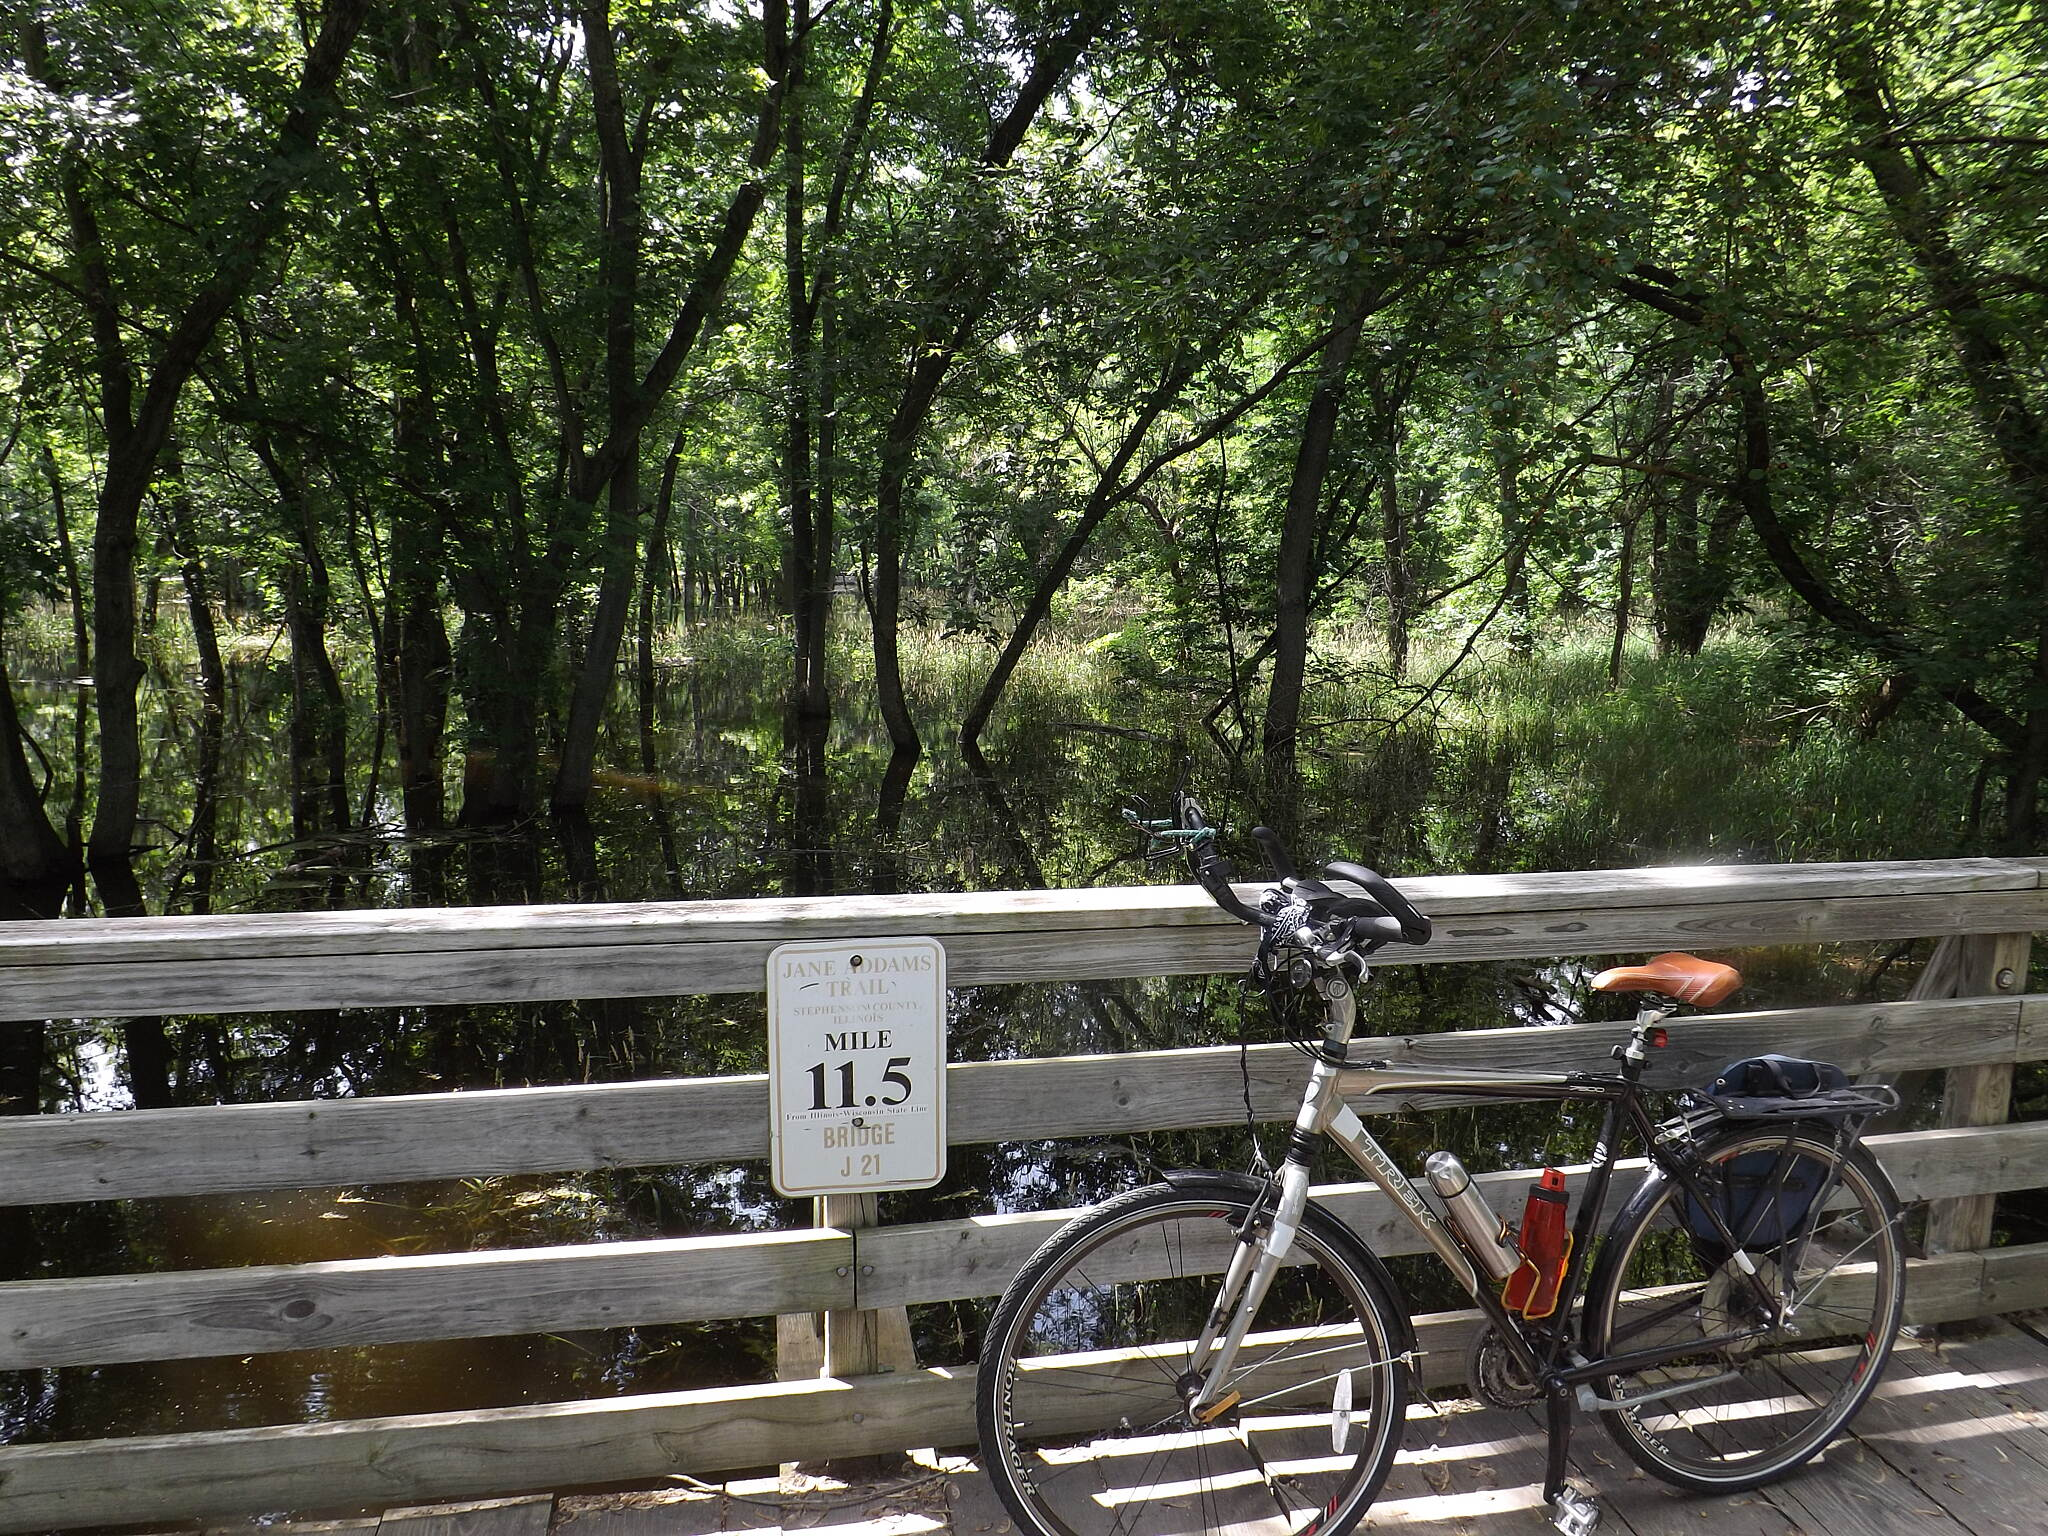 Jane Addams Trail Flooded Forest We've had a lot of rain this spring and summer and the Pecatonica River is quite high.